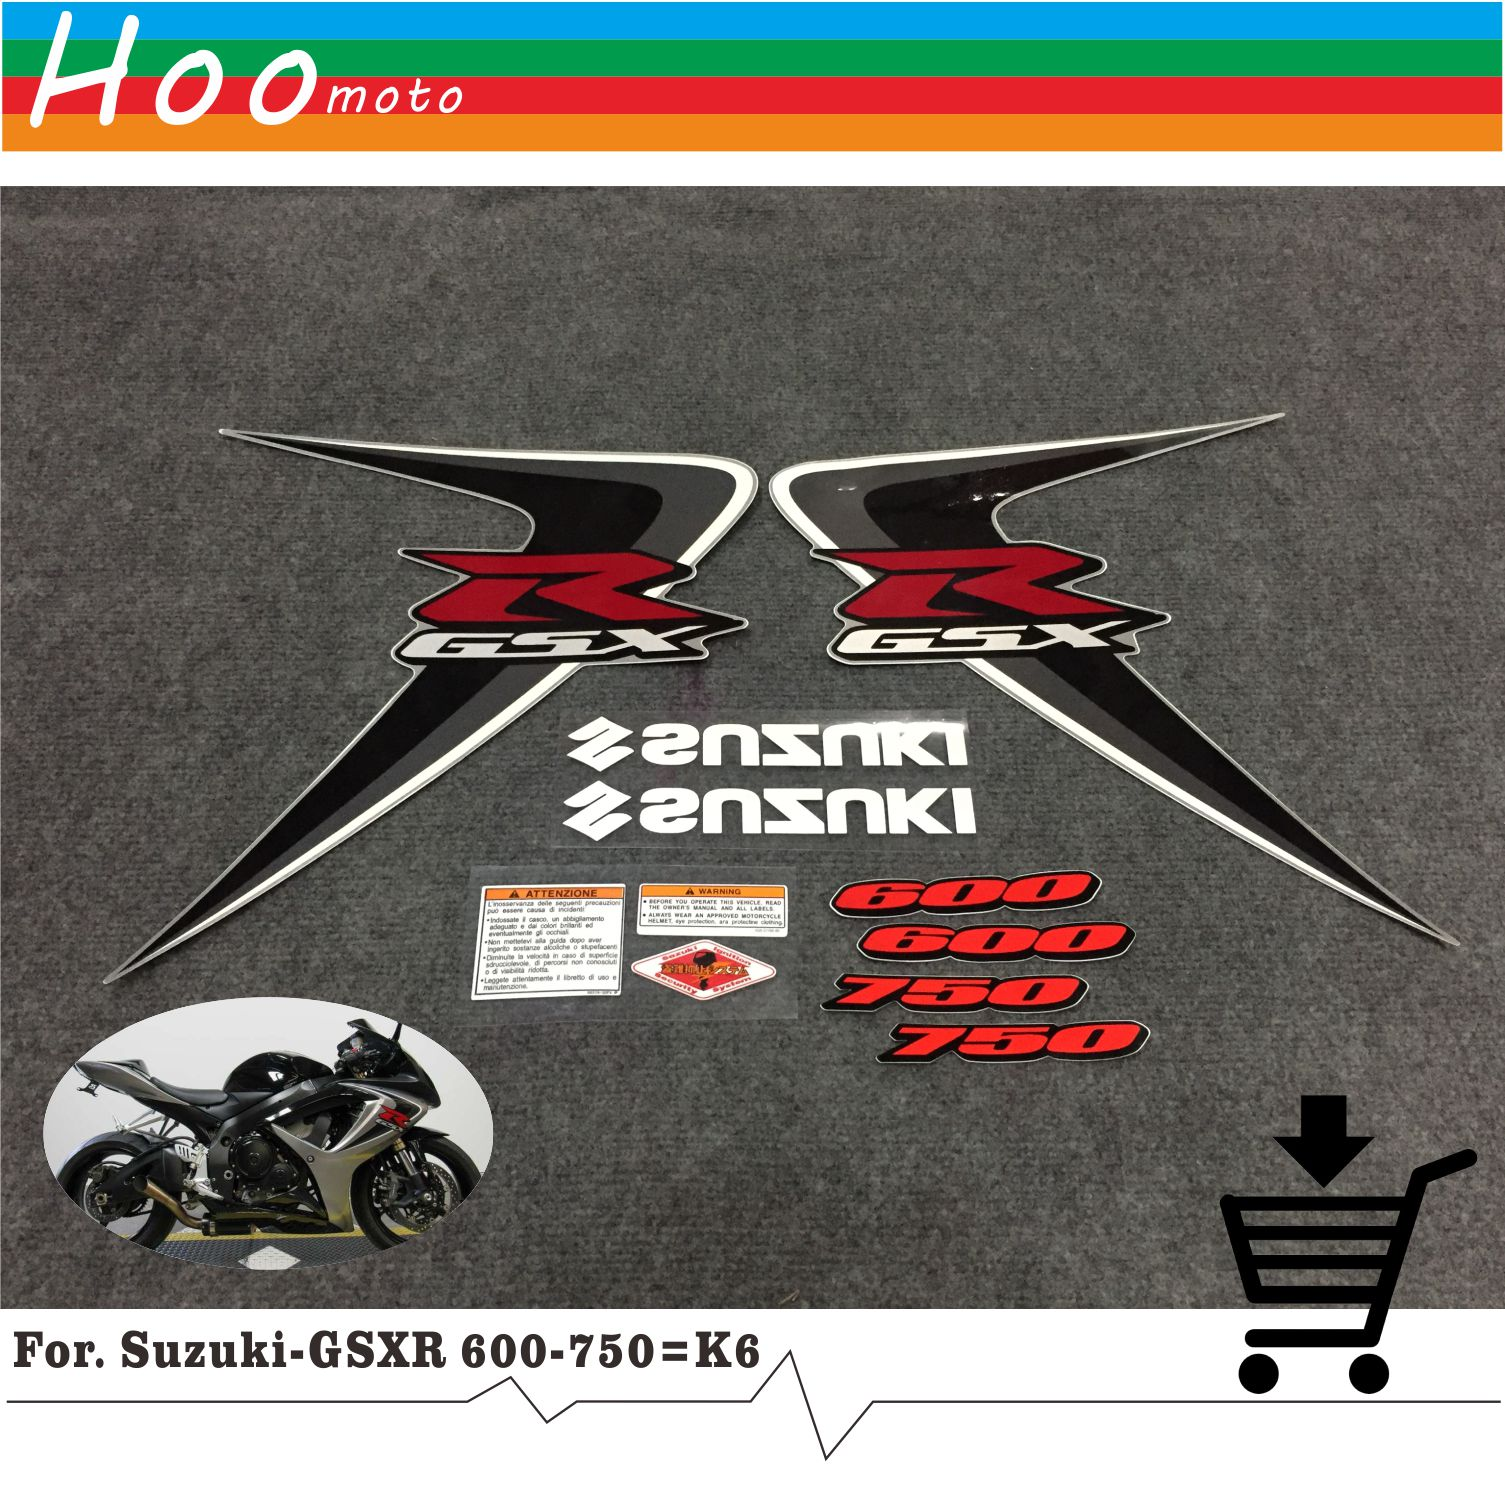 New for Suzuki GSXR GSX-R GSX R 600 K6 2006 MOTO High Quality Decals Sticker Motorcycle Car-styling Stickers More K6 K8 K11 K7 tony moly маска для лица pureness 100 shea butter mask sheet